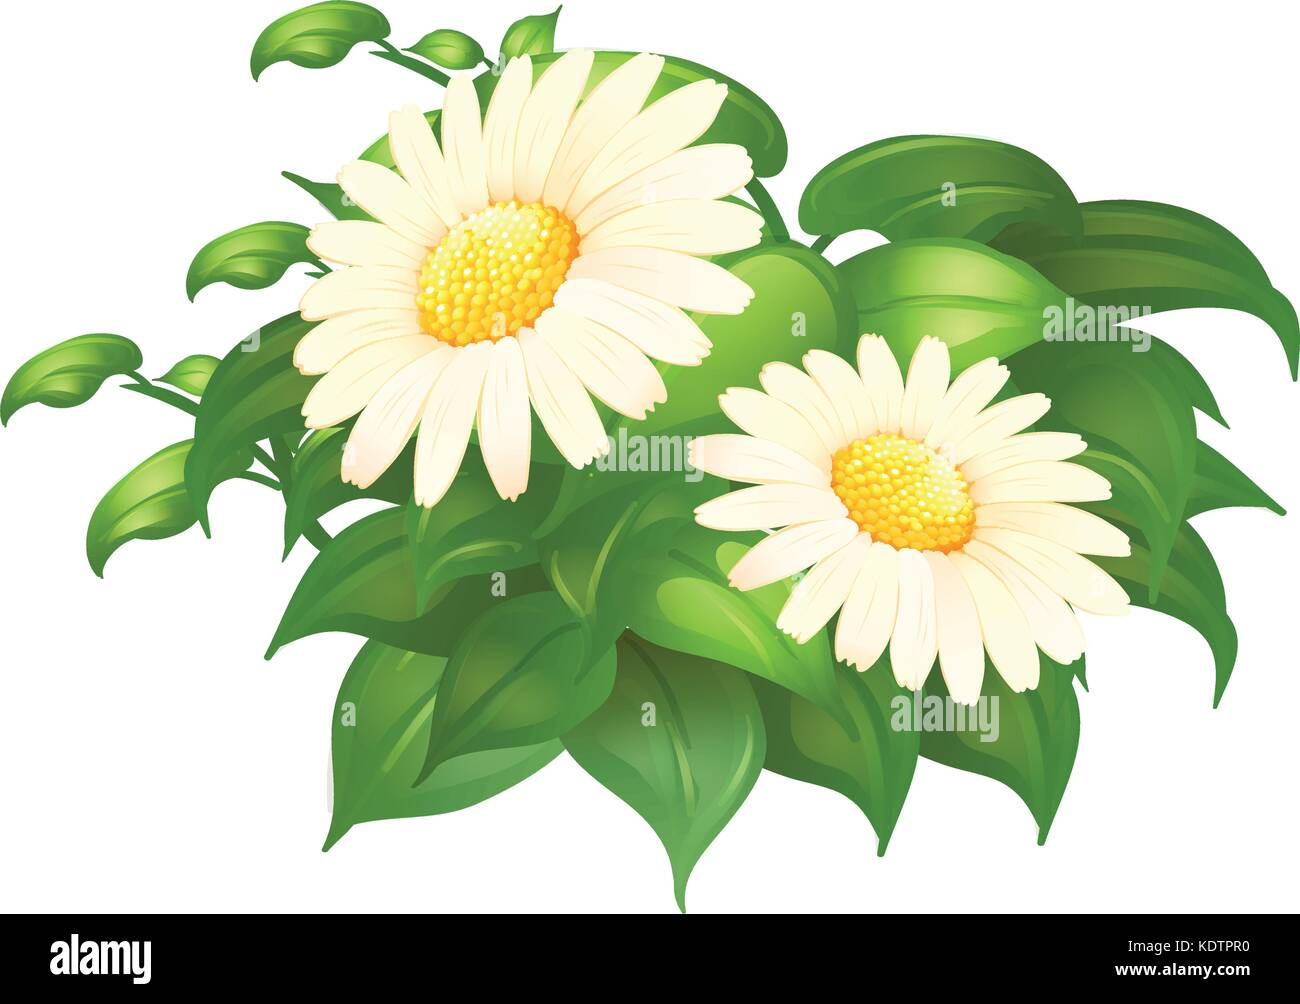 Cartoon daisy flower image cut out stock images pictures alamy white daisy flowers in green bush illustration stock image izmirmasajfo